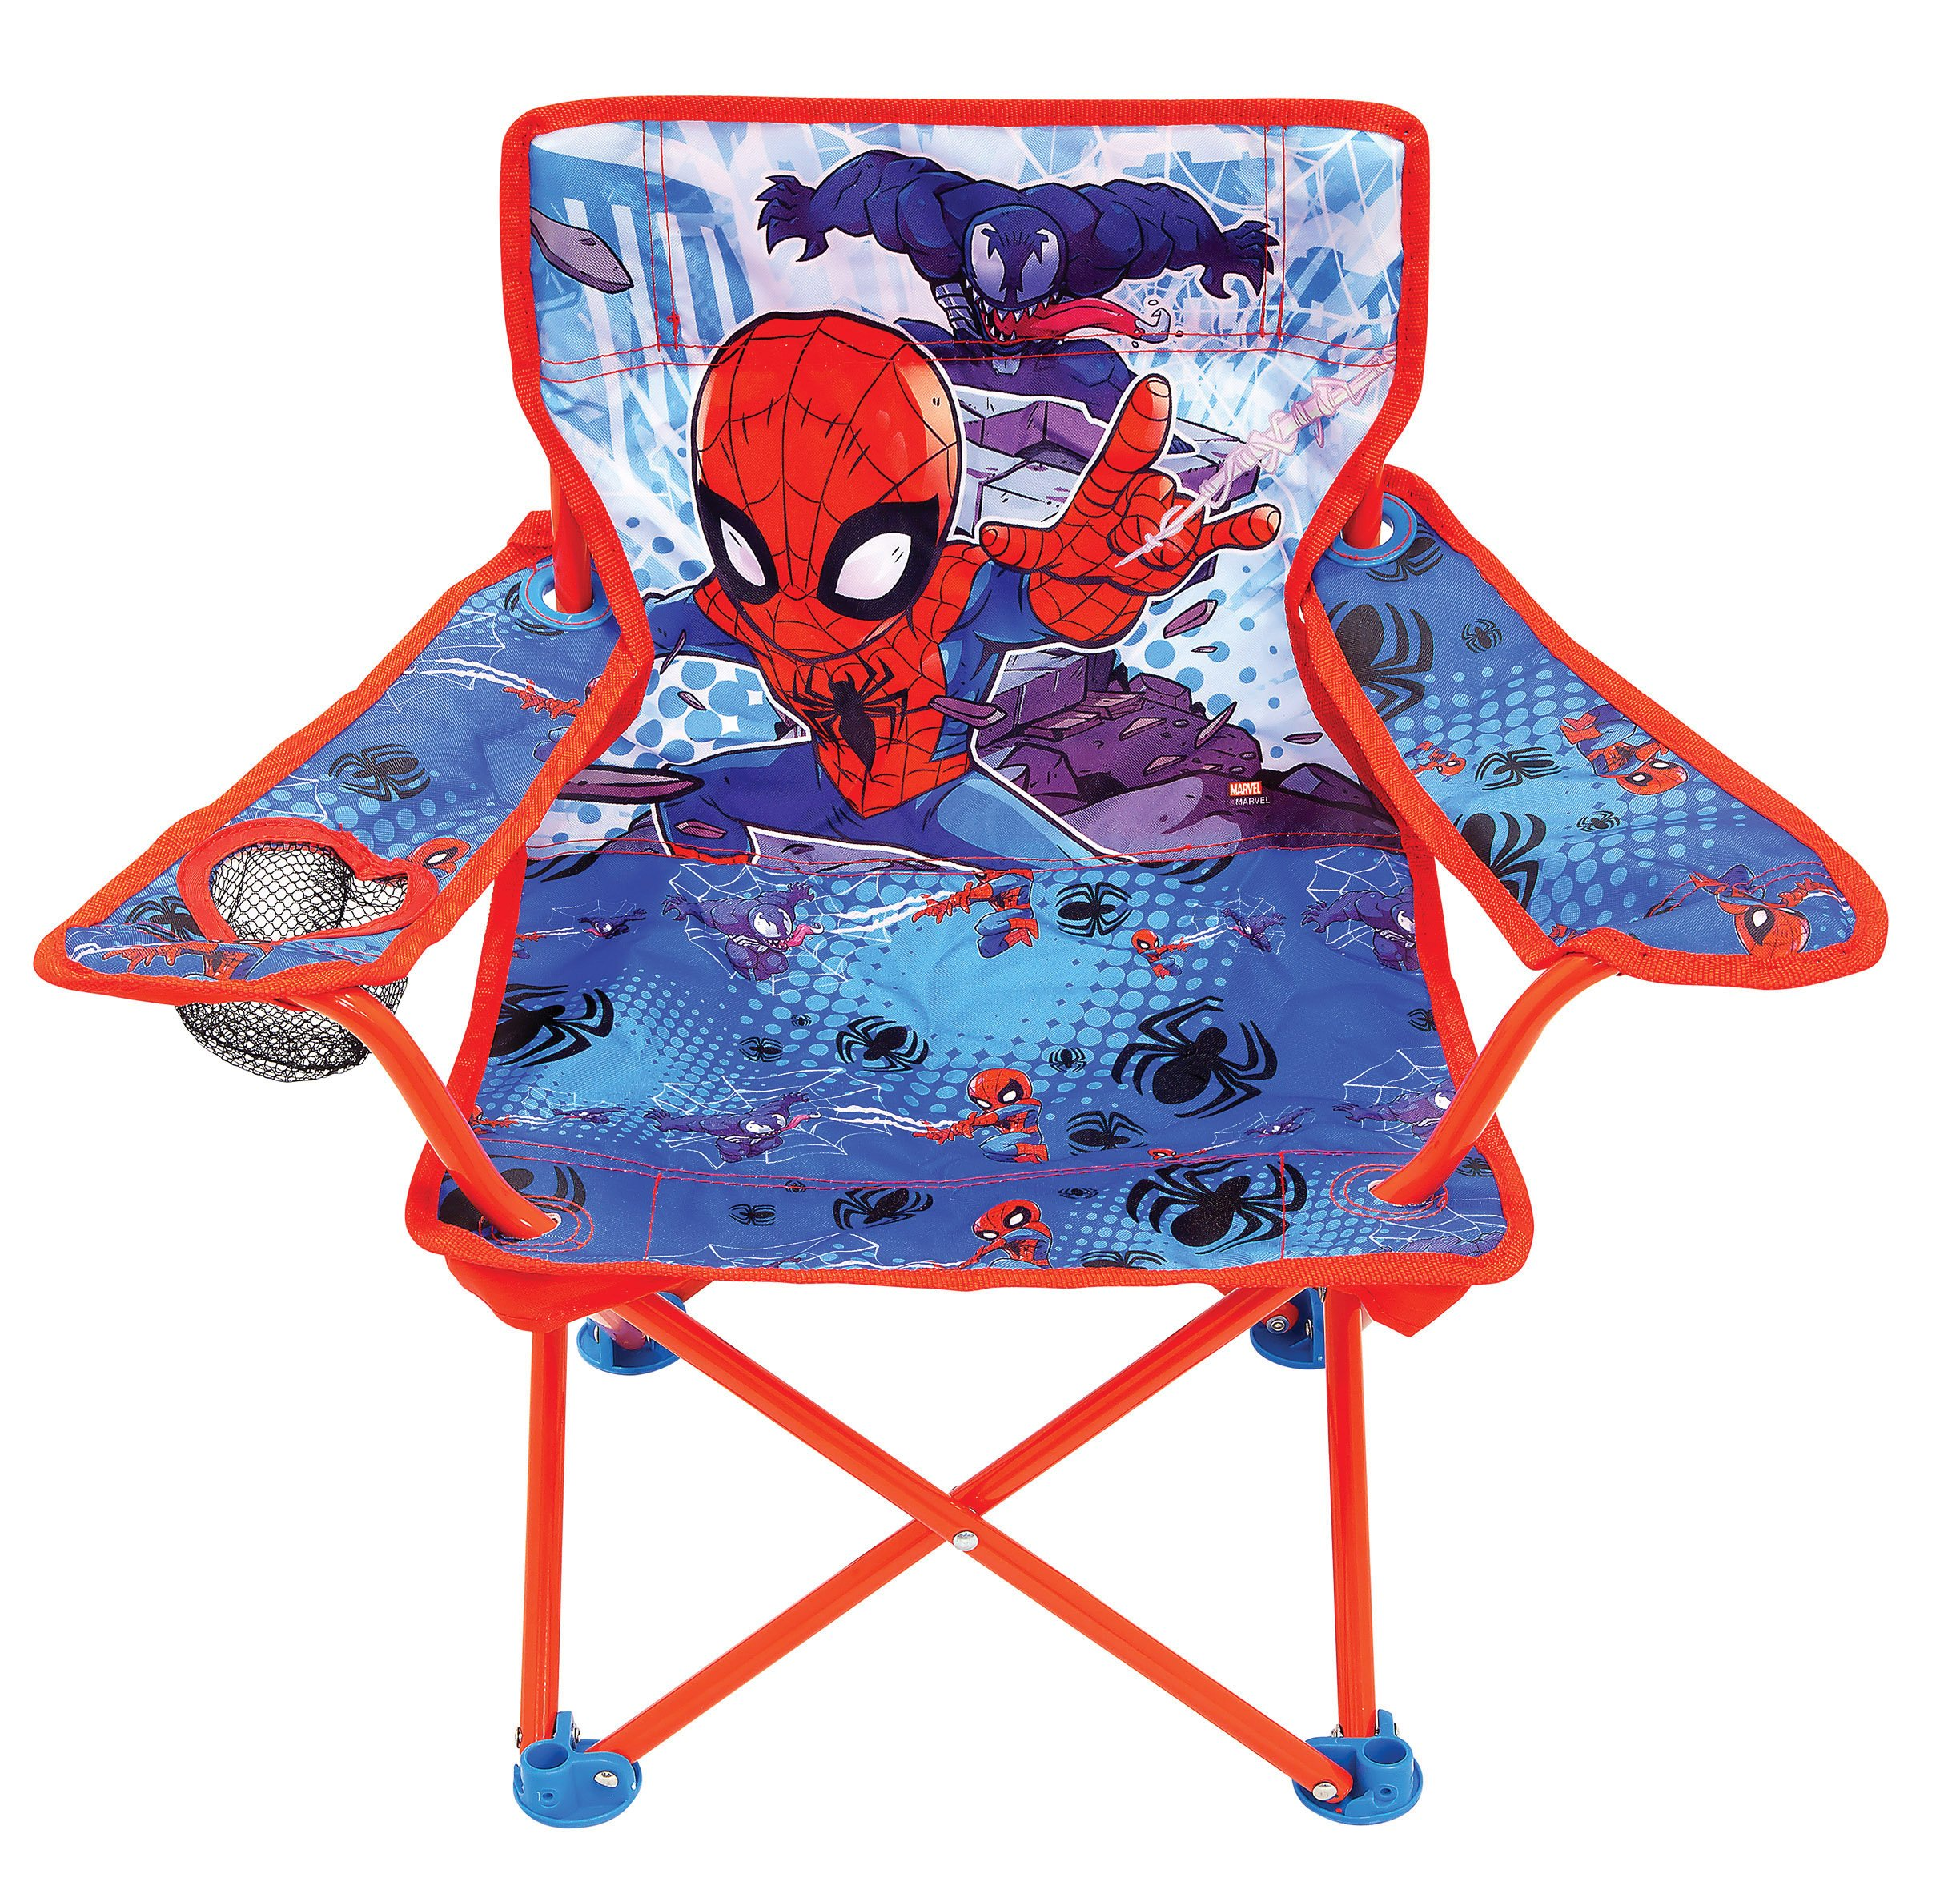 Jakks Pacific Spider-Man Adventures Camp Chair for Kids, Portable Camping Fold N Go Chair with Carry Bag by Jakks Pacific